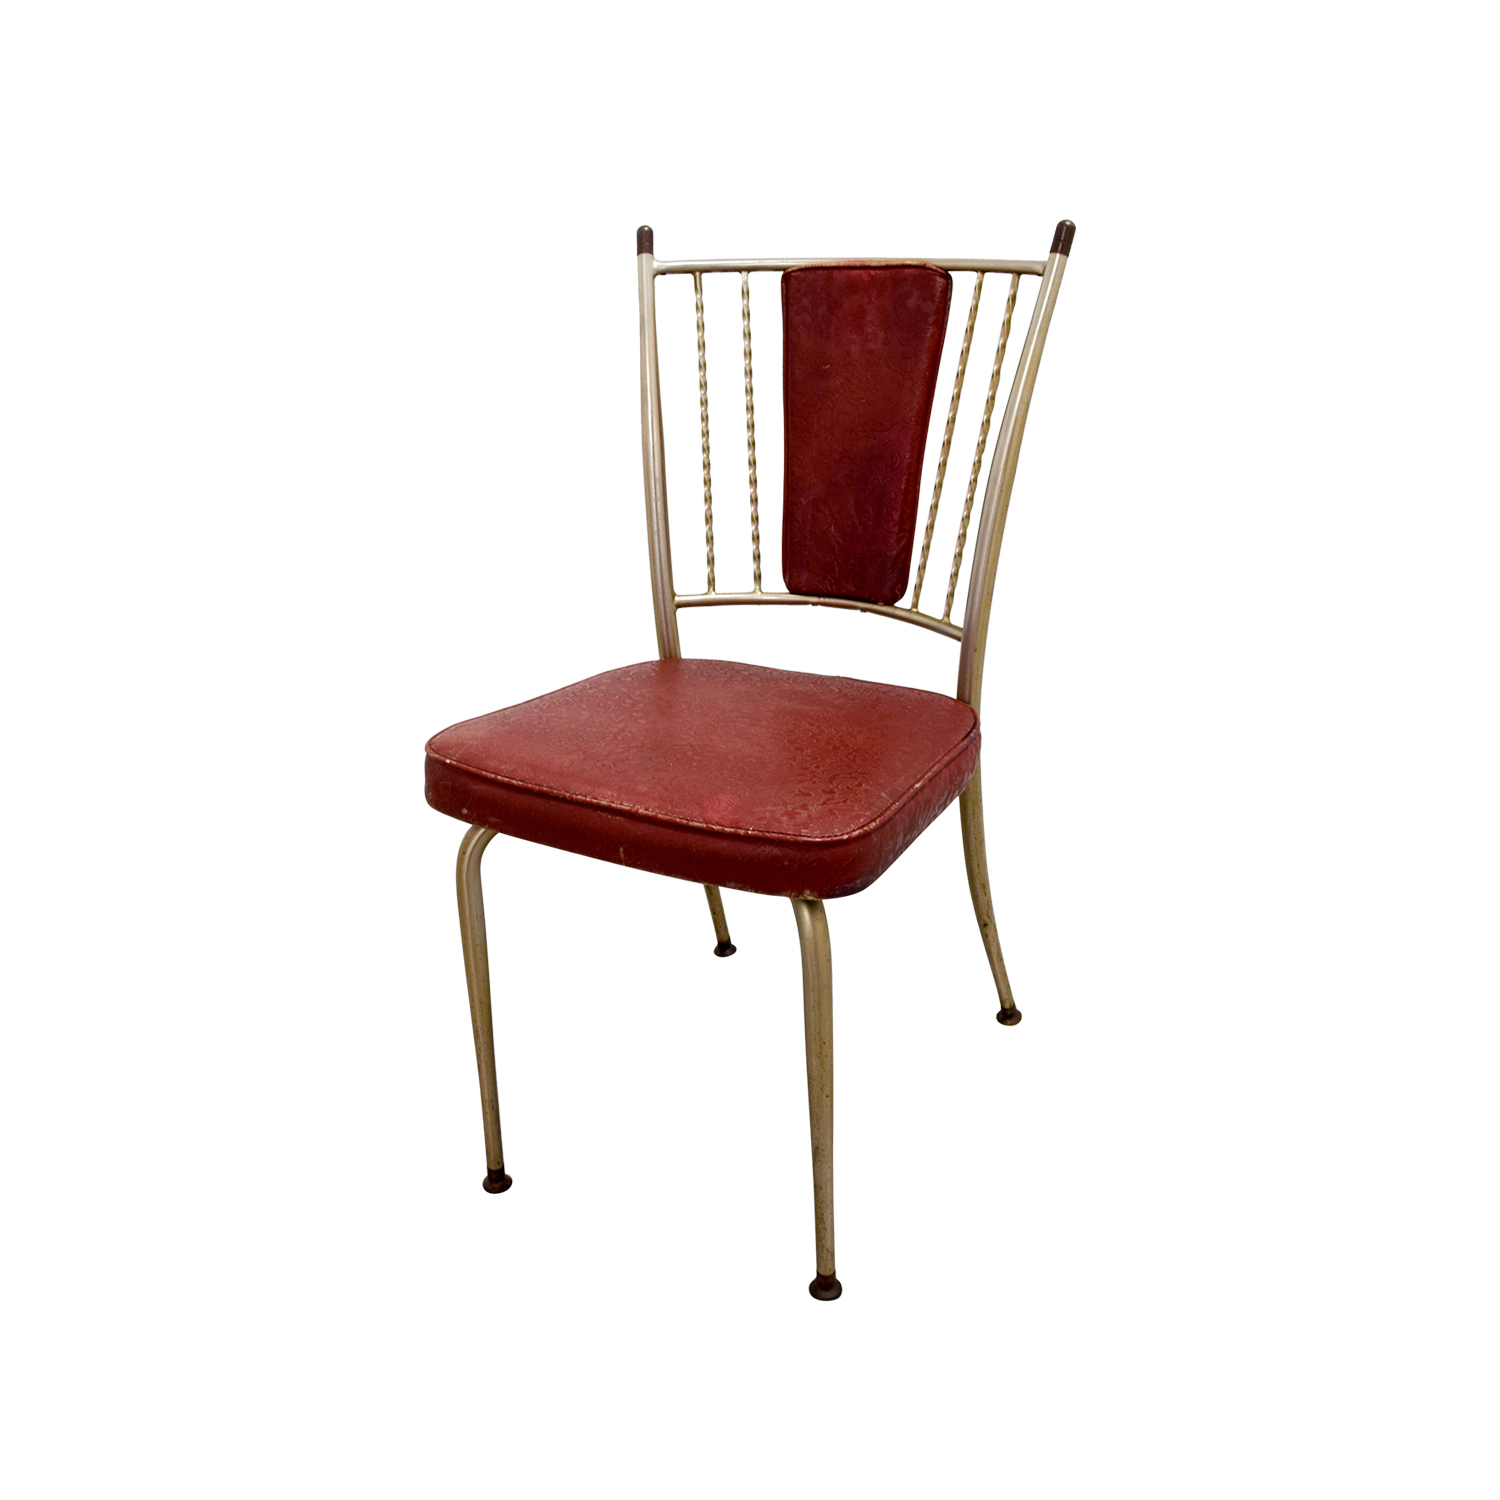 Retro Red Dinette Set used